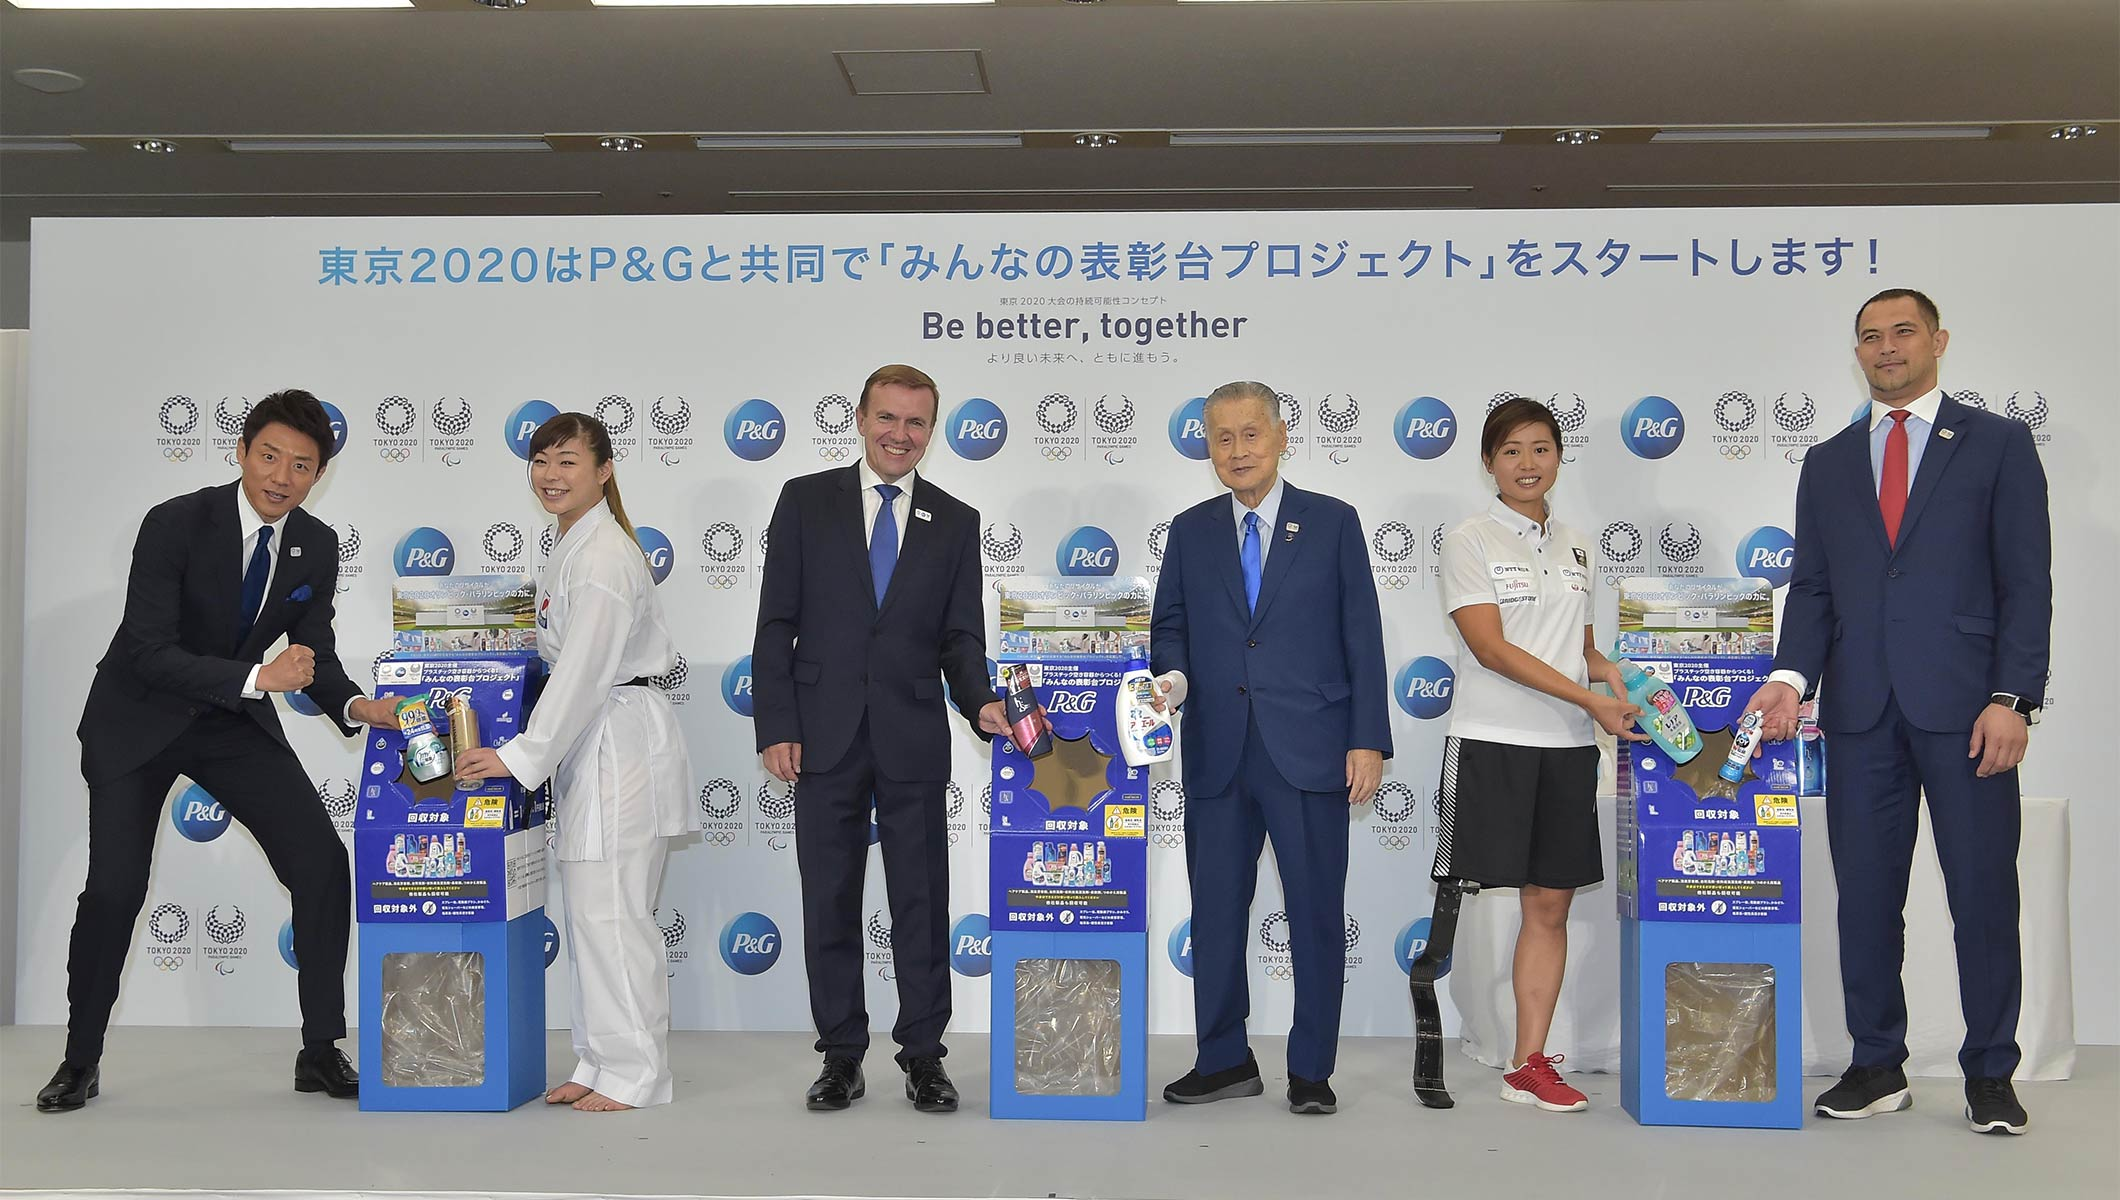 P G And Tokyo 2020 Create First Ever Medal Podiums Made Entirely Of Recycled Plastic For Upcoming Olympic Games Olympic News